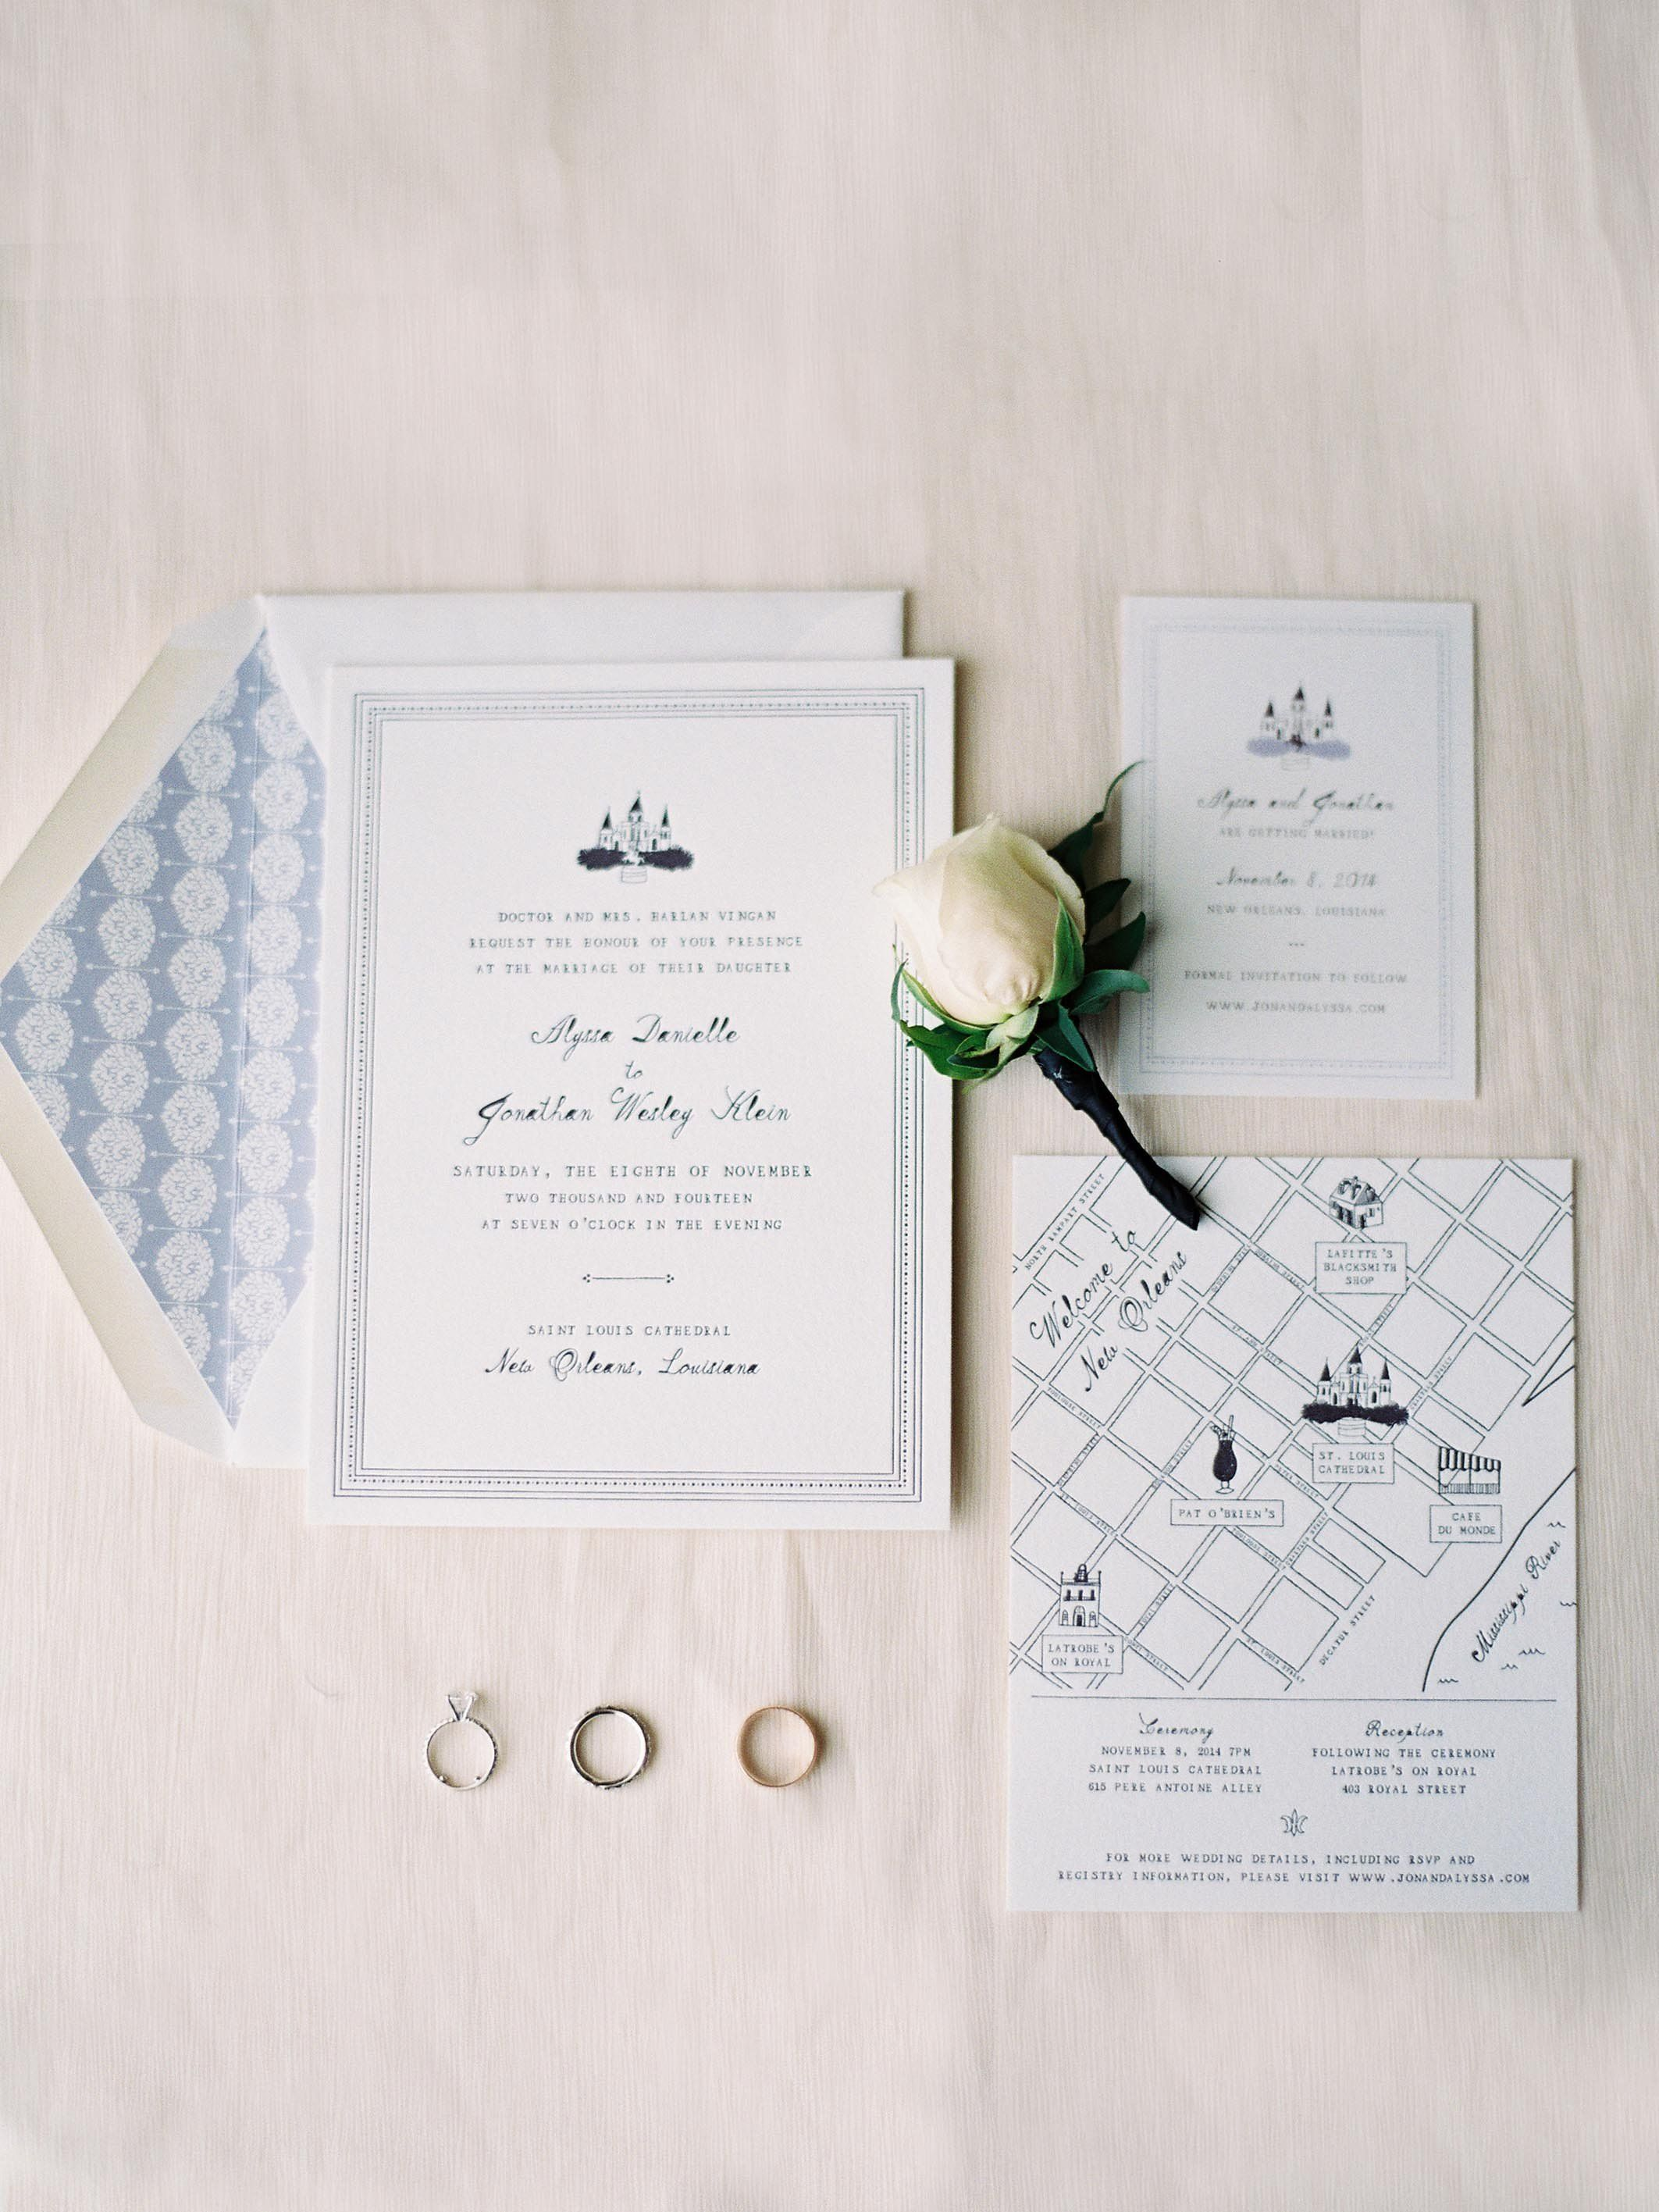 information on wedding invitation examples%0A Why New Orleans u     French Quarter Is The Perfect Place to Say  u